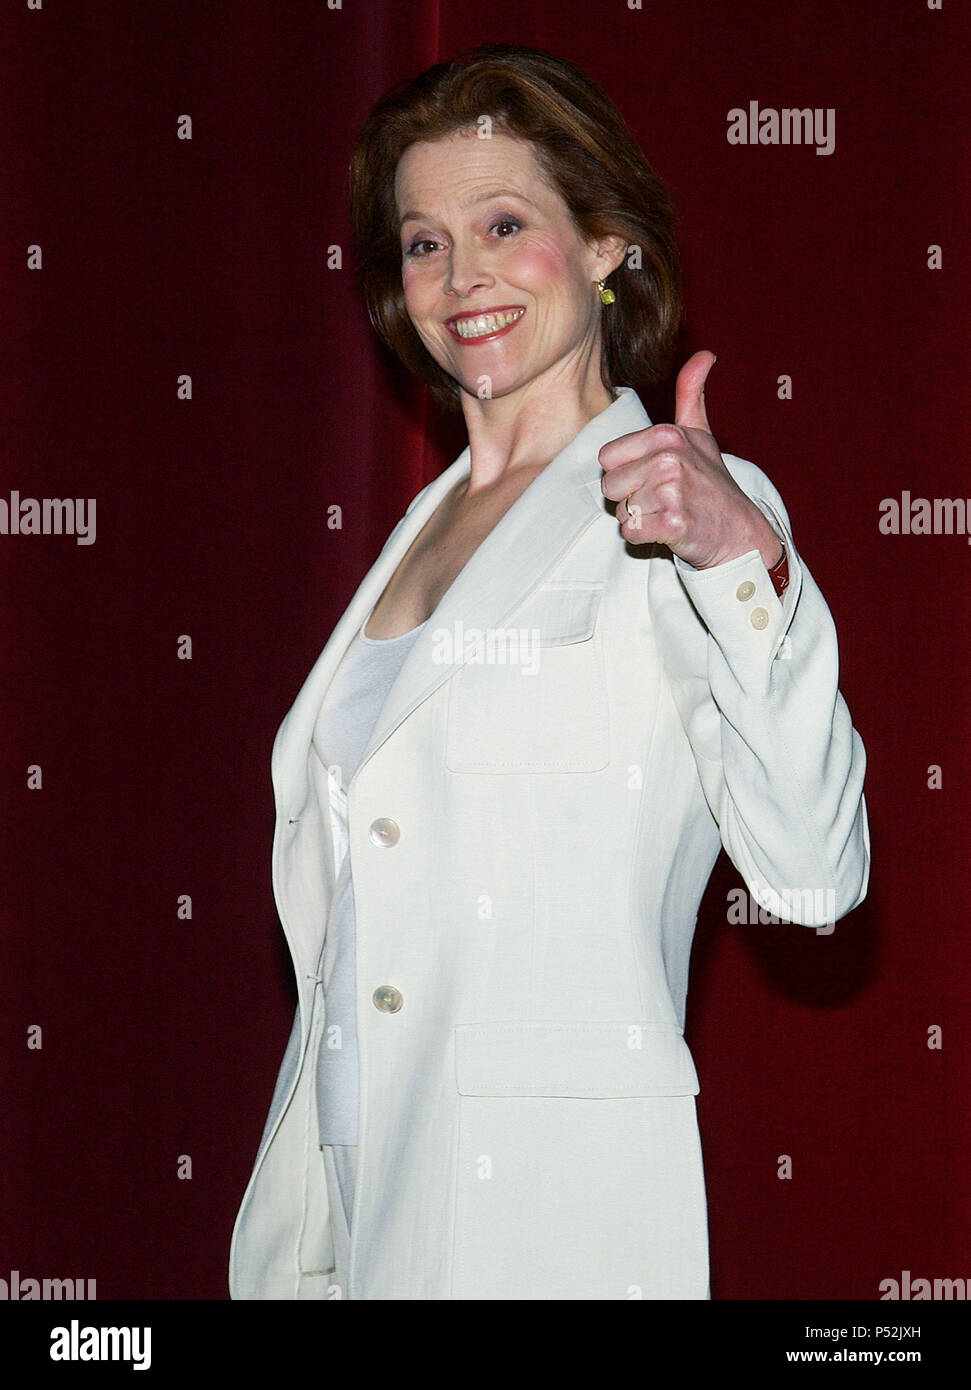 Sigourney Weaver presenting the 76th Academy Awards Nominees at the Academy of Motion Pictures and Sciences in Los Angeles. January, 27, 2004.WeaverSigourney002 Red Carpet Event, Vertical, USA, Film Industry, Celebrities,  Photography, Bestof, Arts Culture and Entertainment, Topix Celebrities fashion /  Vertical, Best of, Event in Hollywood Life - California,  Red Carpet and backstage, USA, Film Industry, Celebrities,  movie celebrities, TV celebrities, Music celebrities, Photography, Bestof, Arts Culture and Entertainment,  Topix, vertical, one person,, from the years , 2003 to 2005, inquiry  - Stock Image